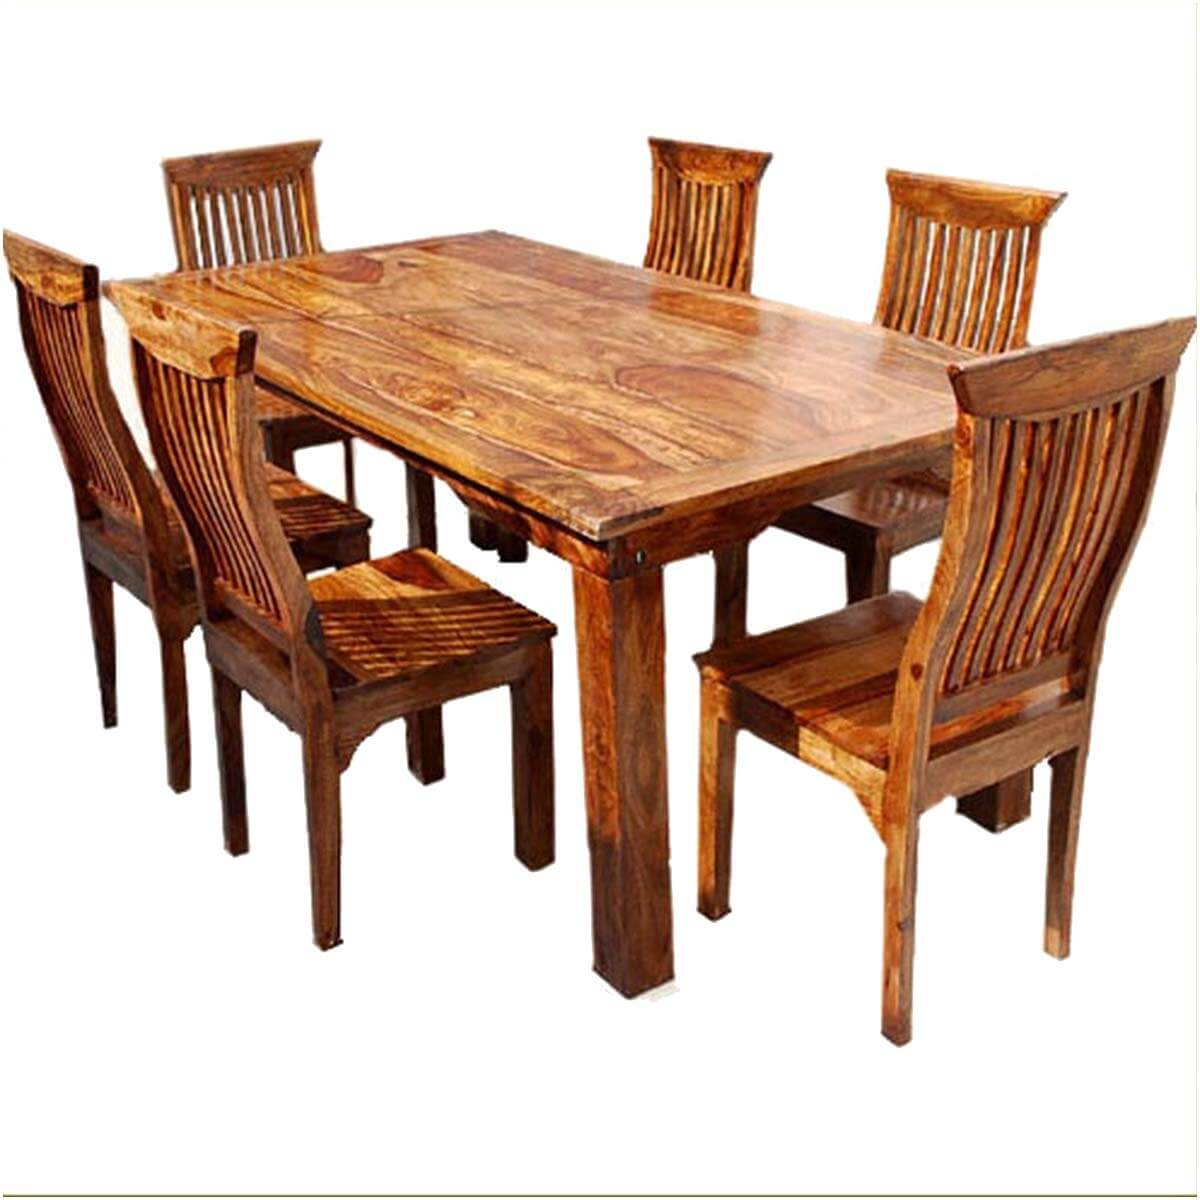 Dallas ranch solid wood rustic dining table chairs hutch set for Wooden dining room furniture